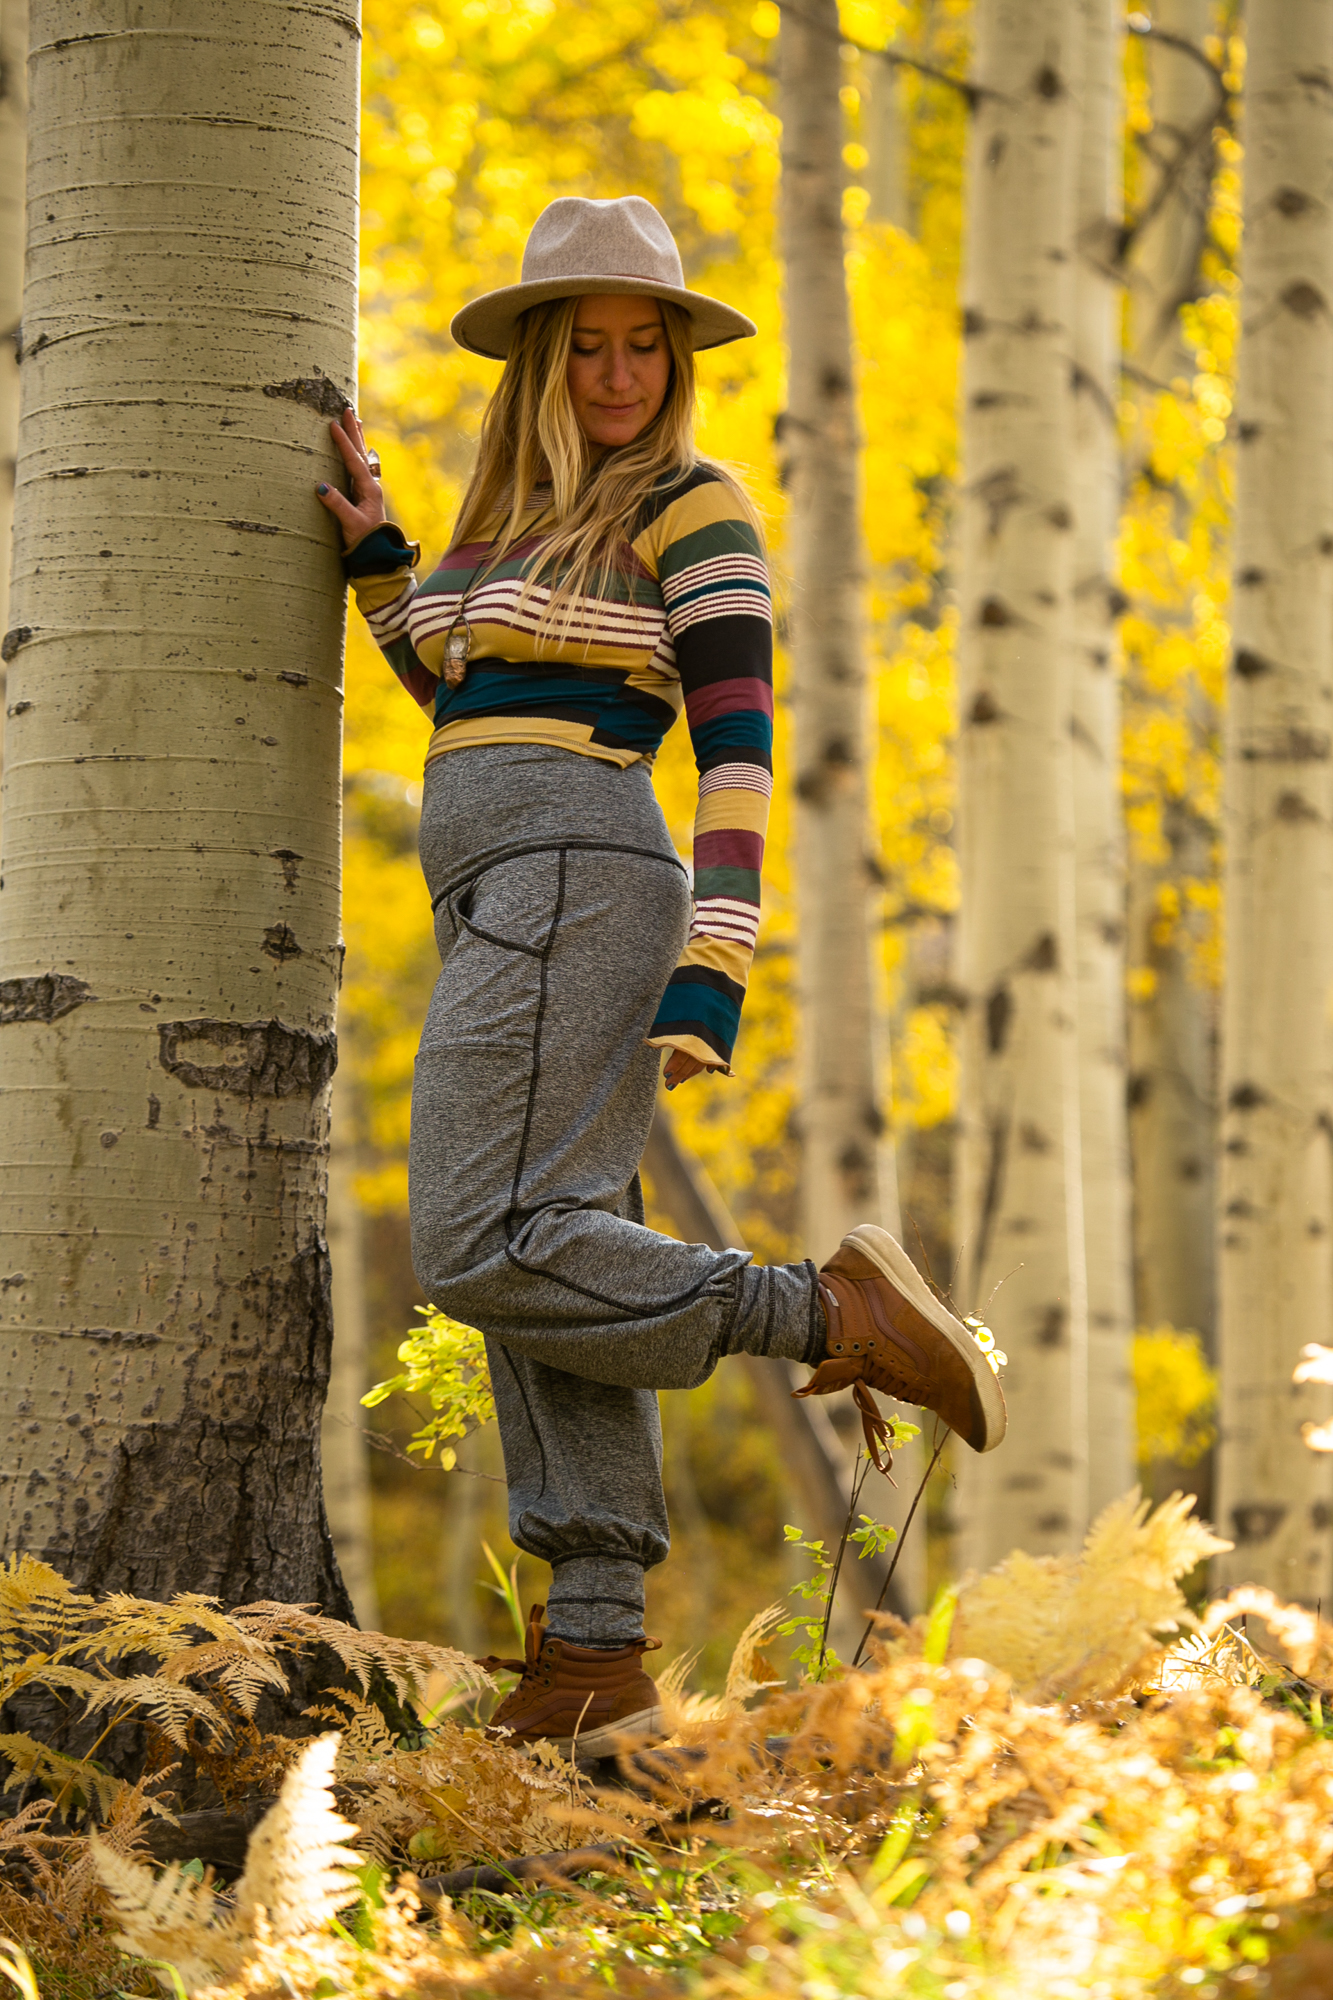 Our newest Unisex addition to the Autumn Teneyl Line.  This pant really was made for everybody!  It still has the comfy, casual fit of the Dreamer Pant without the rouching and we added a gusset for a more comfort!  Super soft knit fabric that is durable but silky to the touch. We kept the pull on waist, the two front pockets pocket for style and a hidden pocket to keep your valuables safe. Who doesn't love pockets!  You can push the cuff up and wear the leg as a cropped pant.